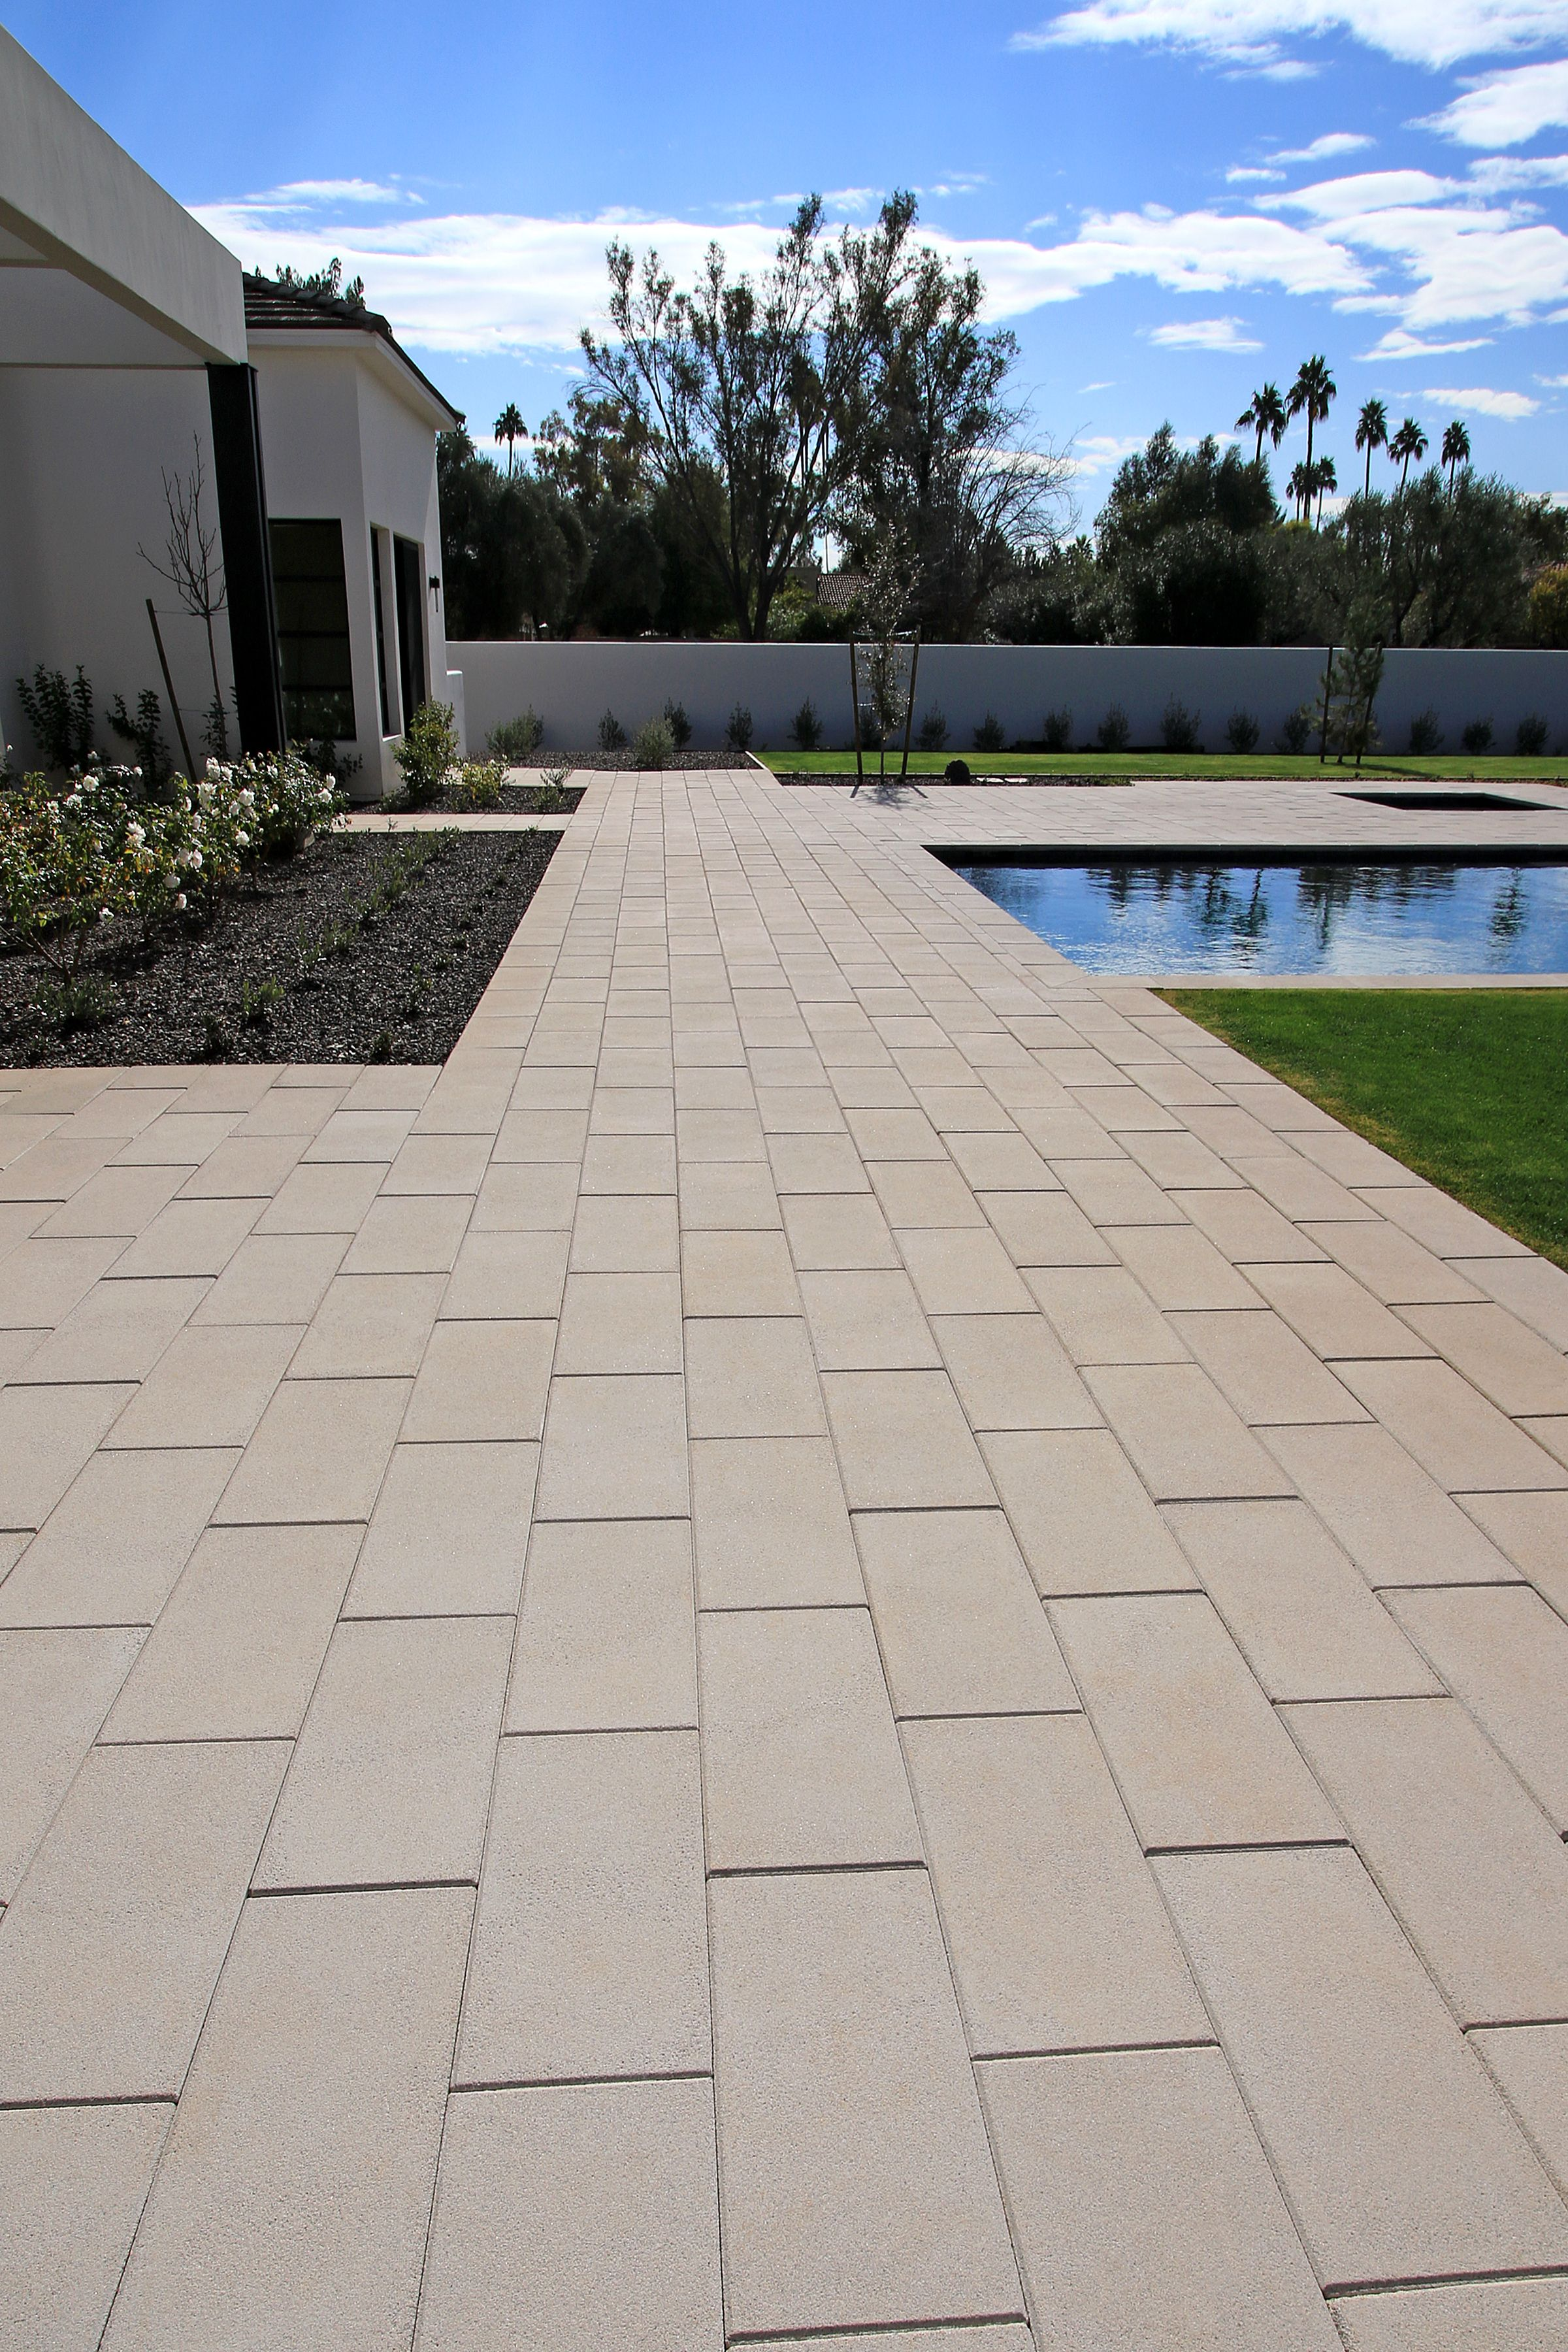 This Pool Patio Has Been Transformed With Our Palazzo 12 X 24 Looks Amazing Doesn T It Ackerstone Pav Patio Pavers Design Paver Patio Outdoor Patio Pavers